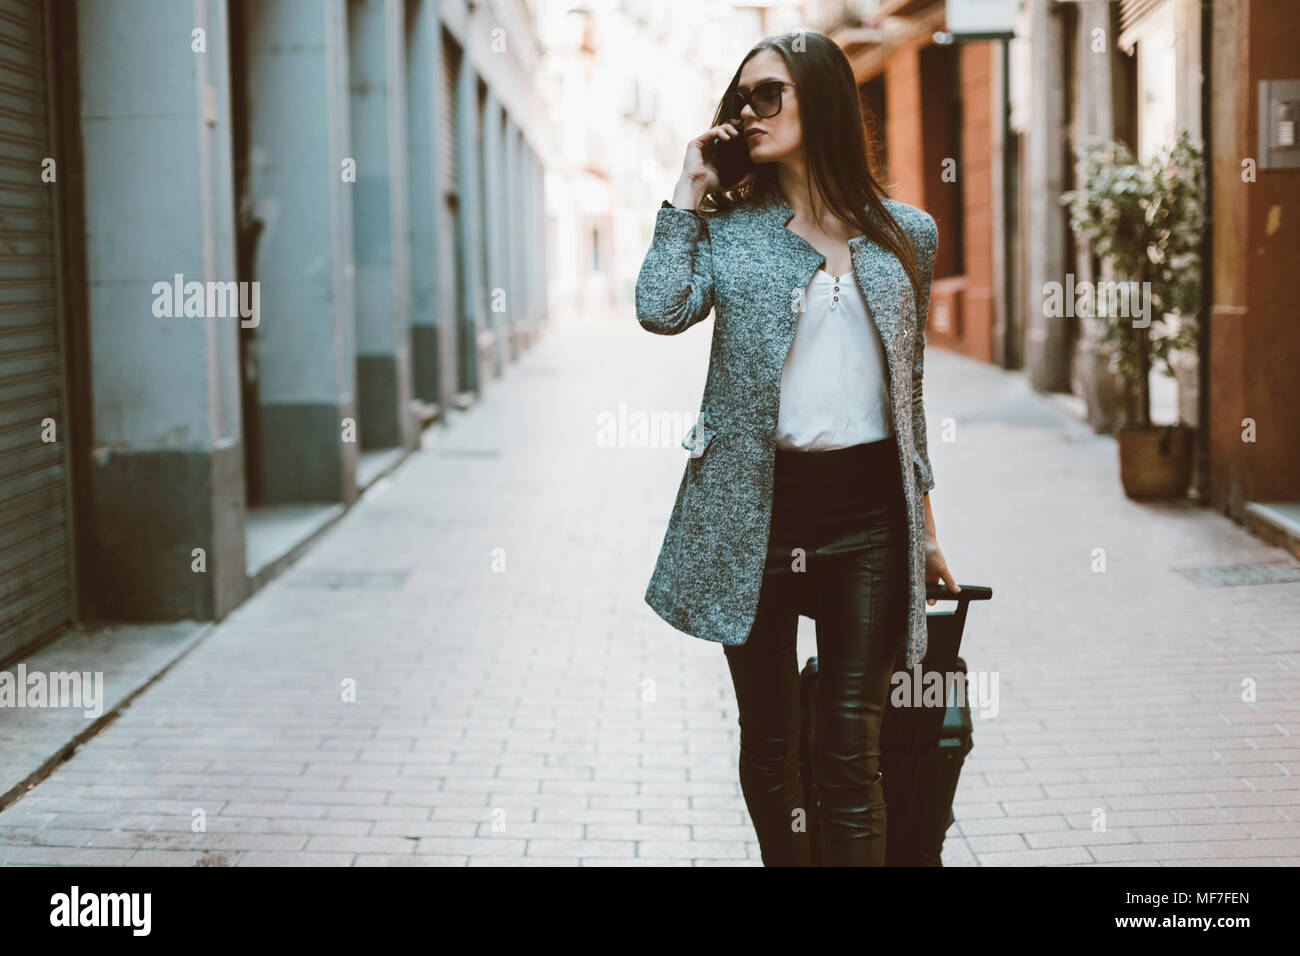 Young tourist on the phone walking down the street - Stock Image